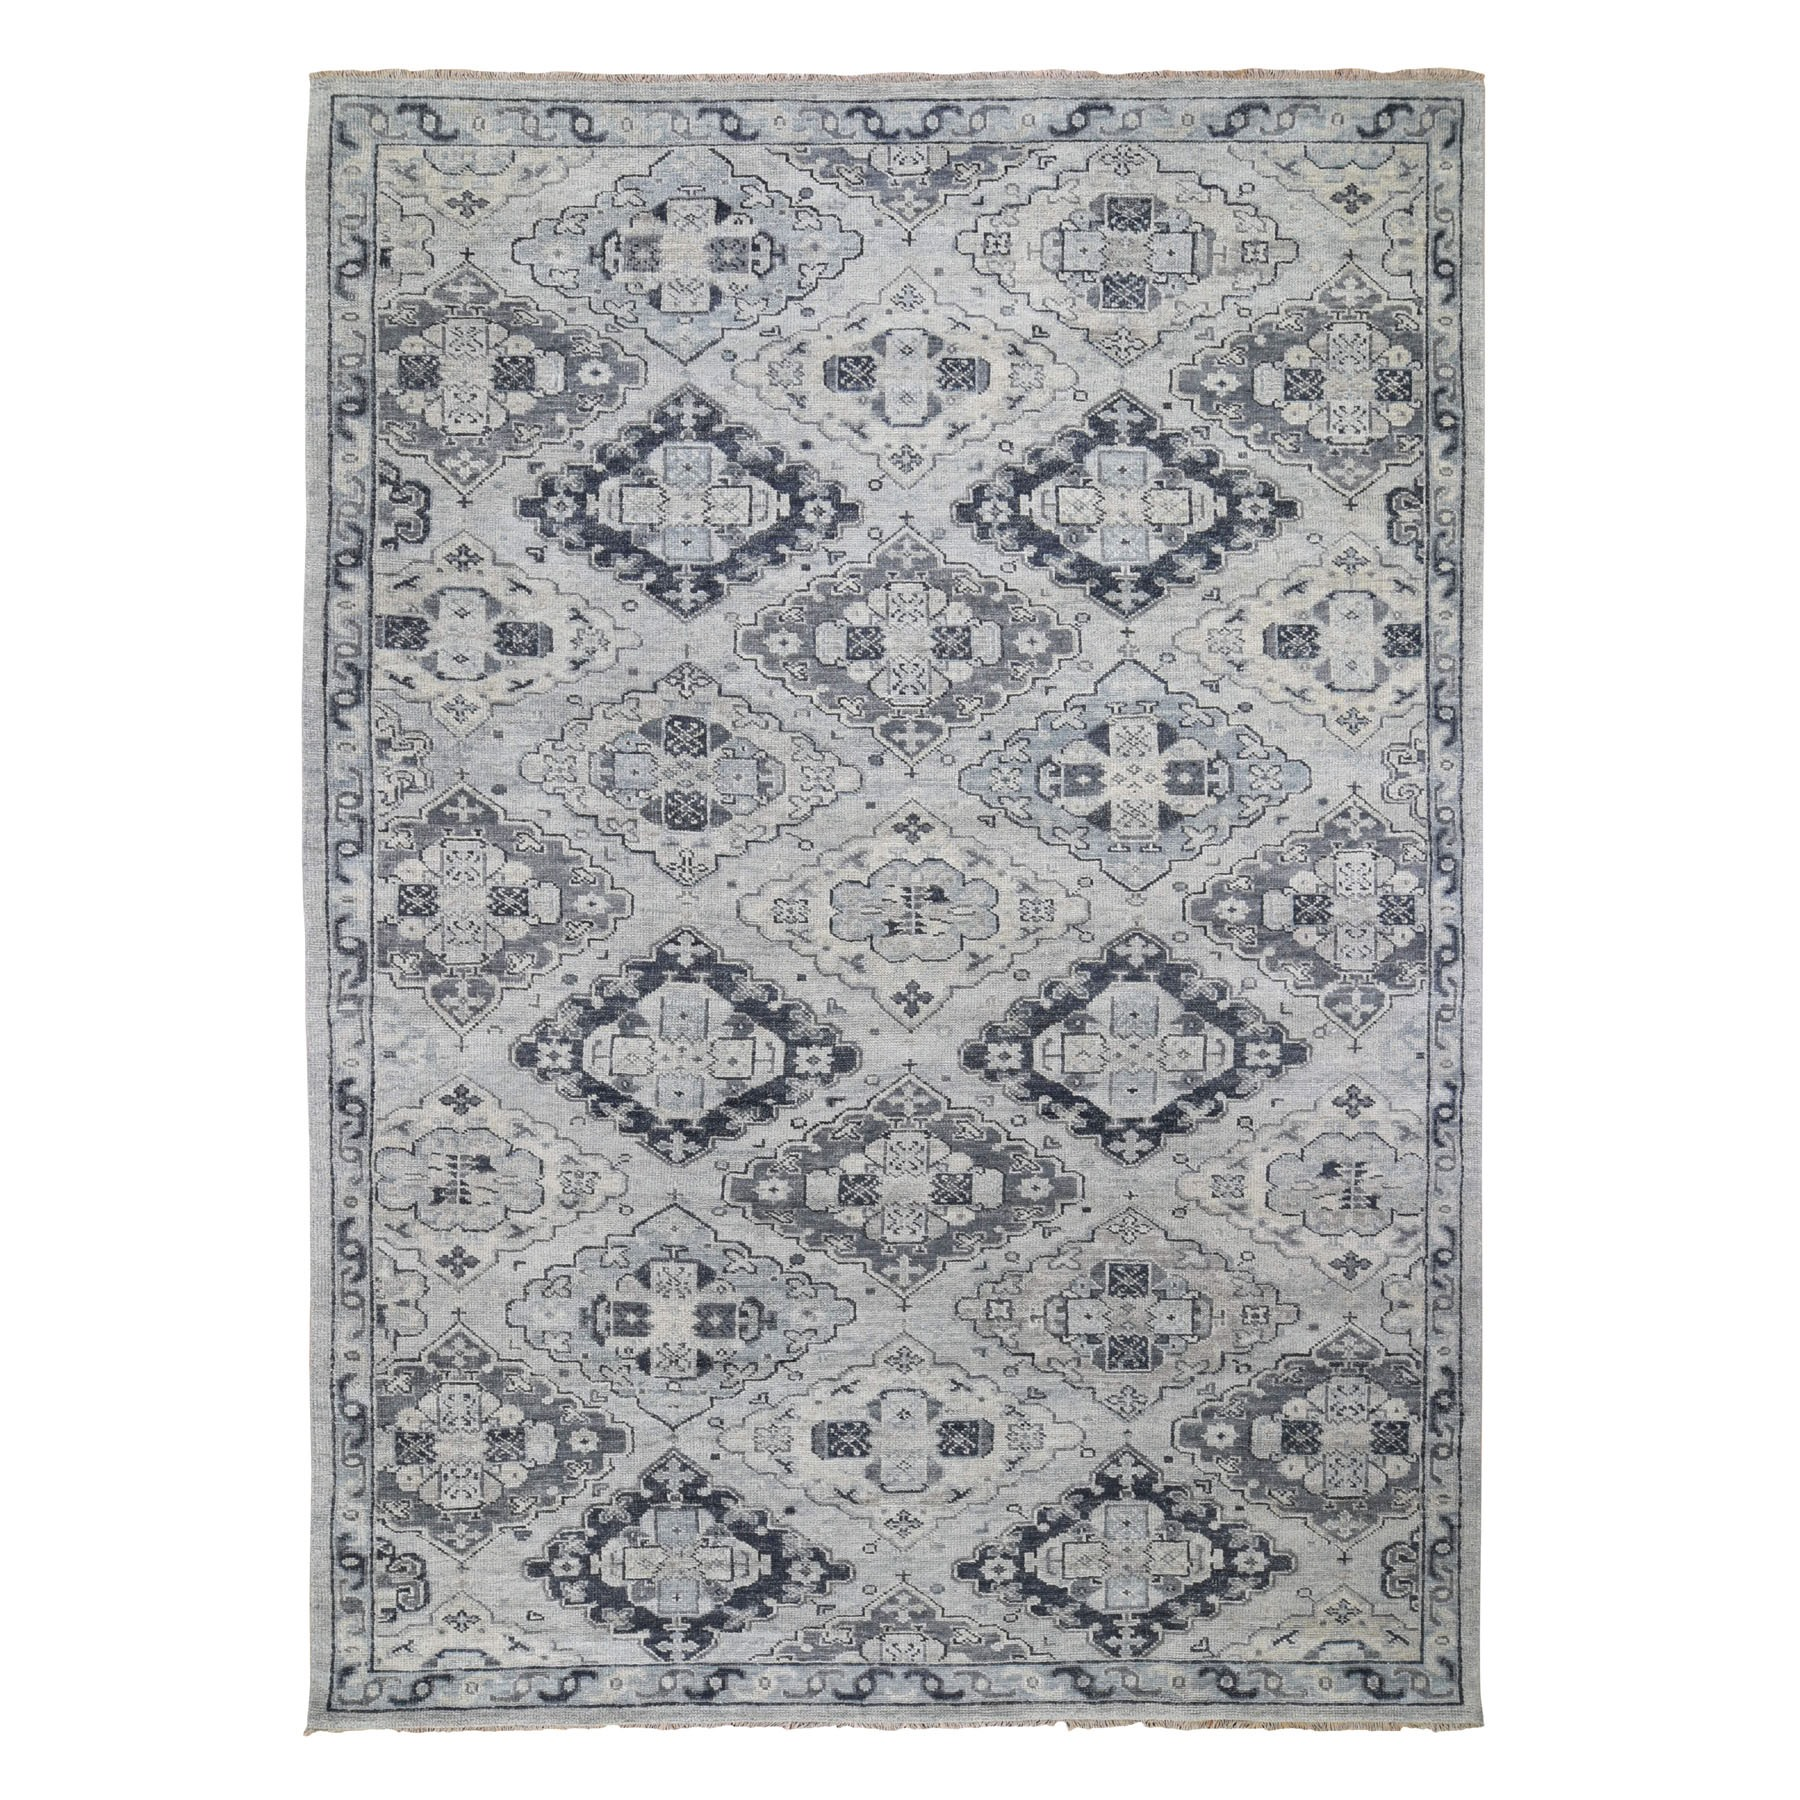 Nomadic And Village Collection Hand Knotted Grey Rug No: 0196482